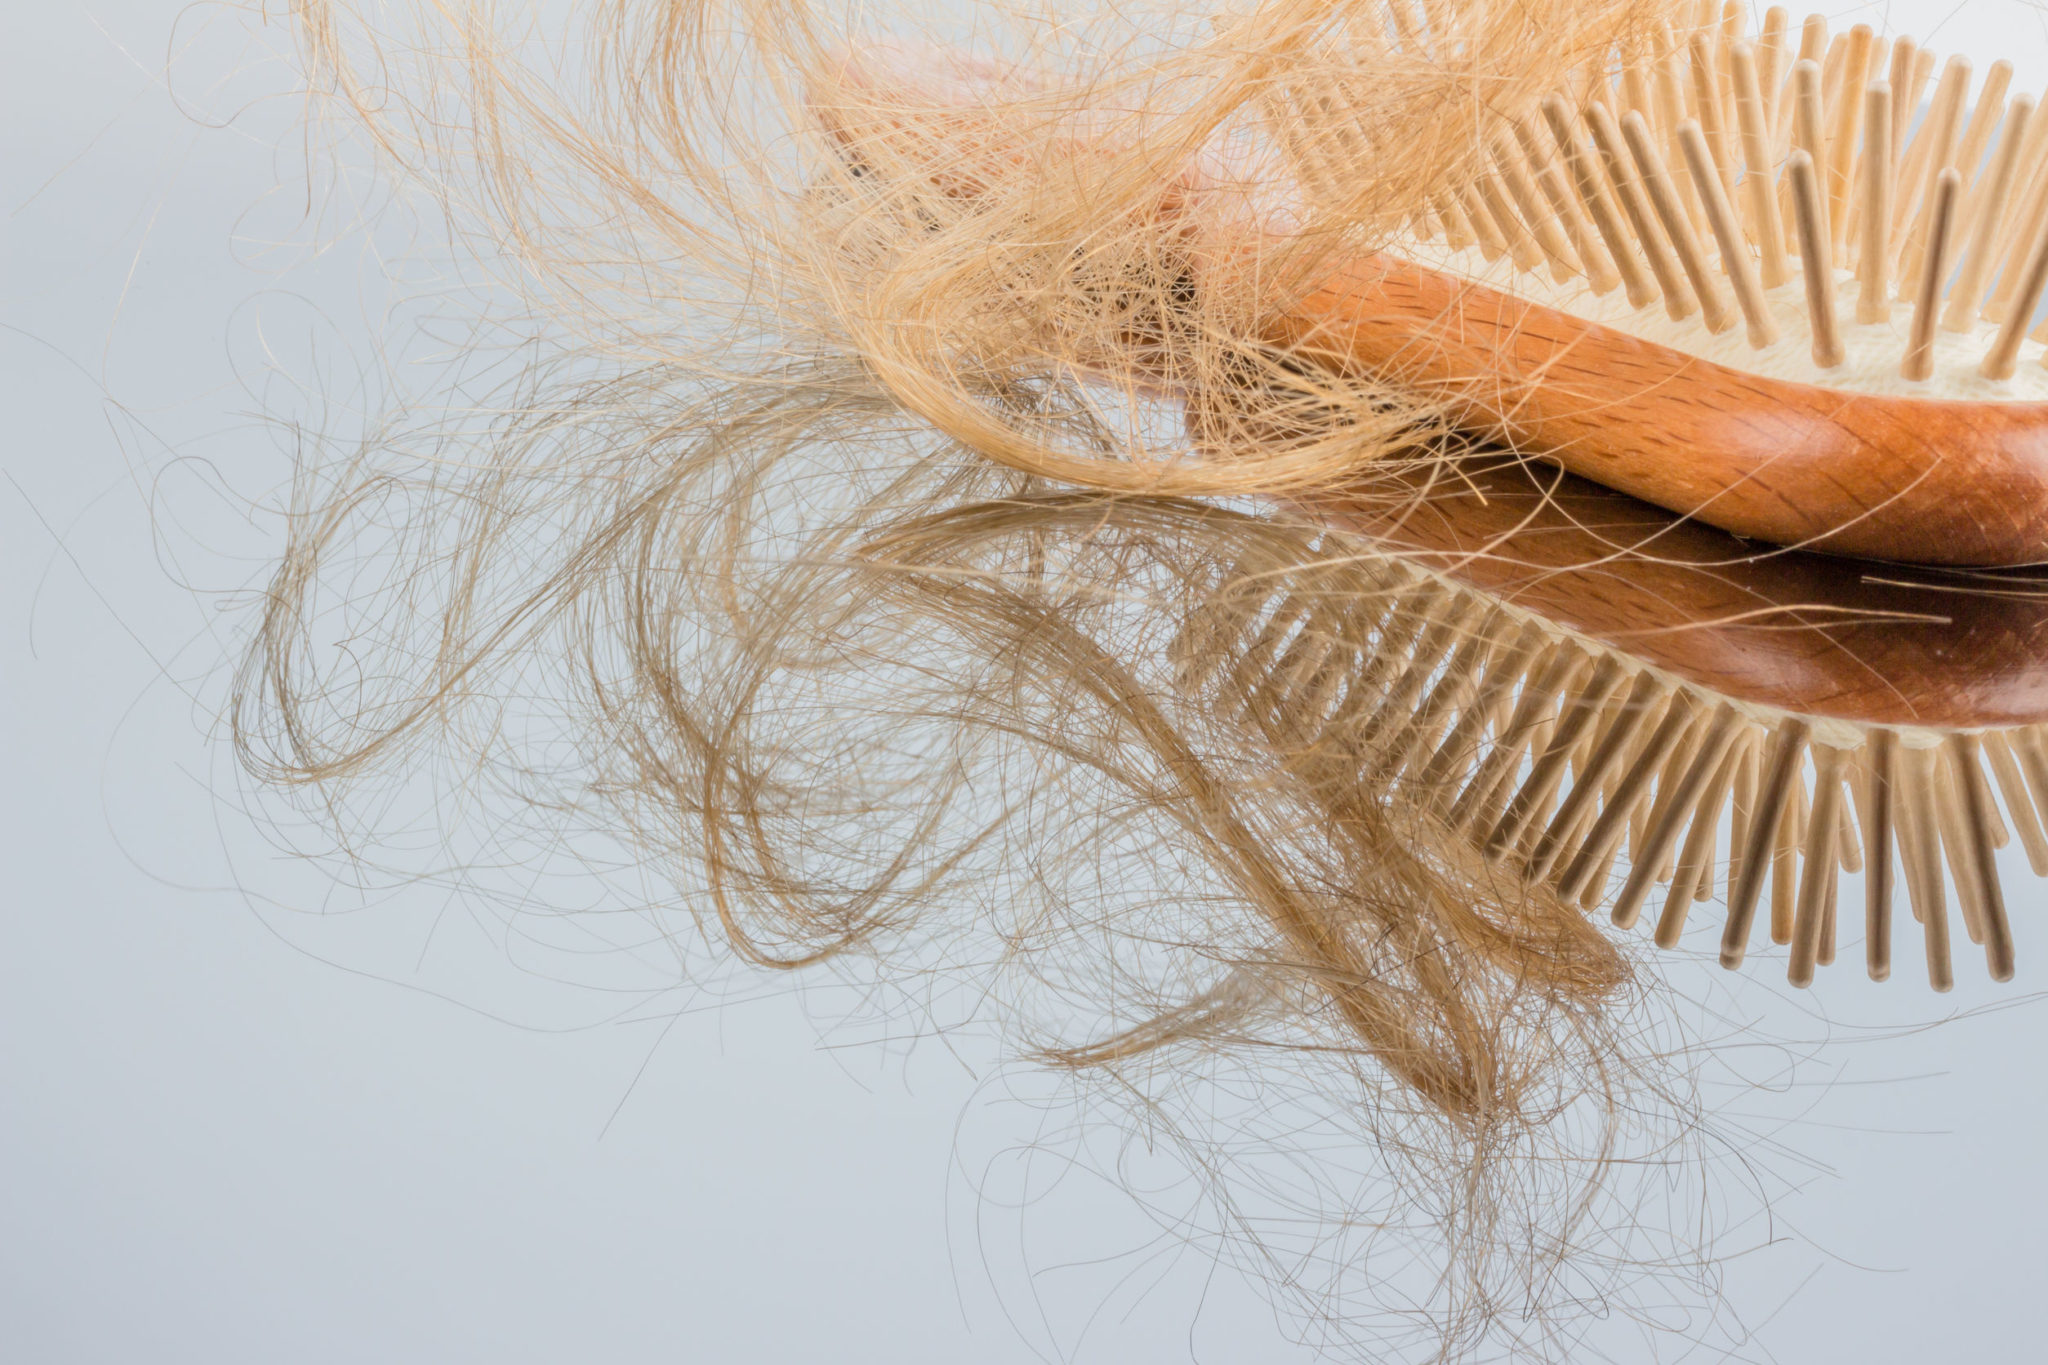 What Are the Risk Factors for Hair Loss